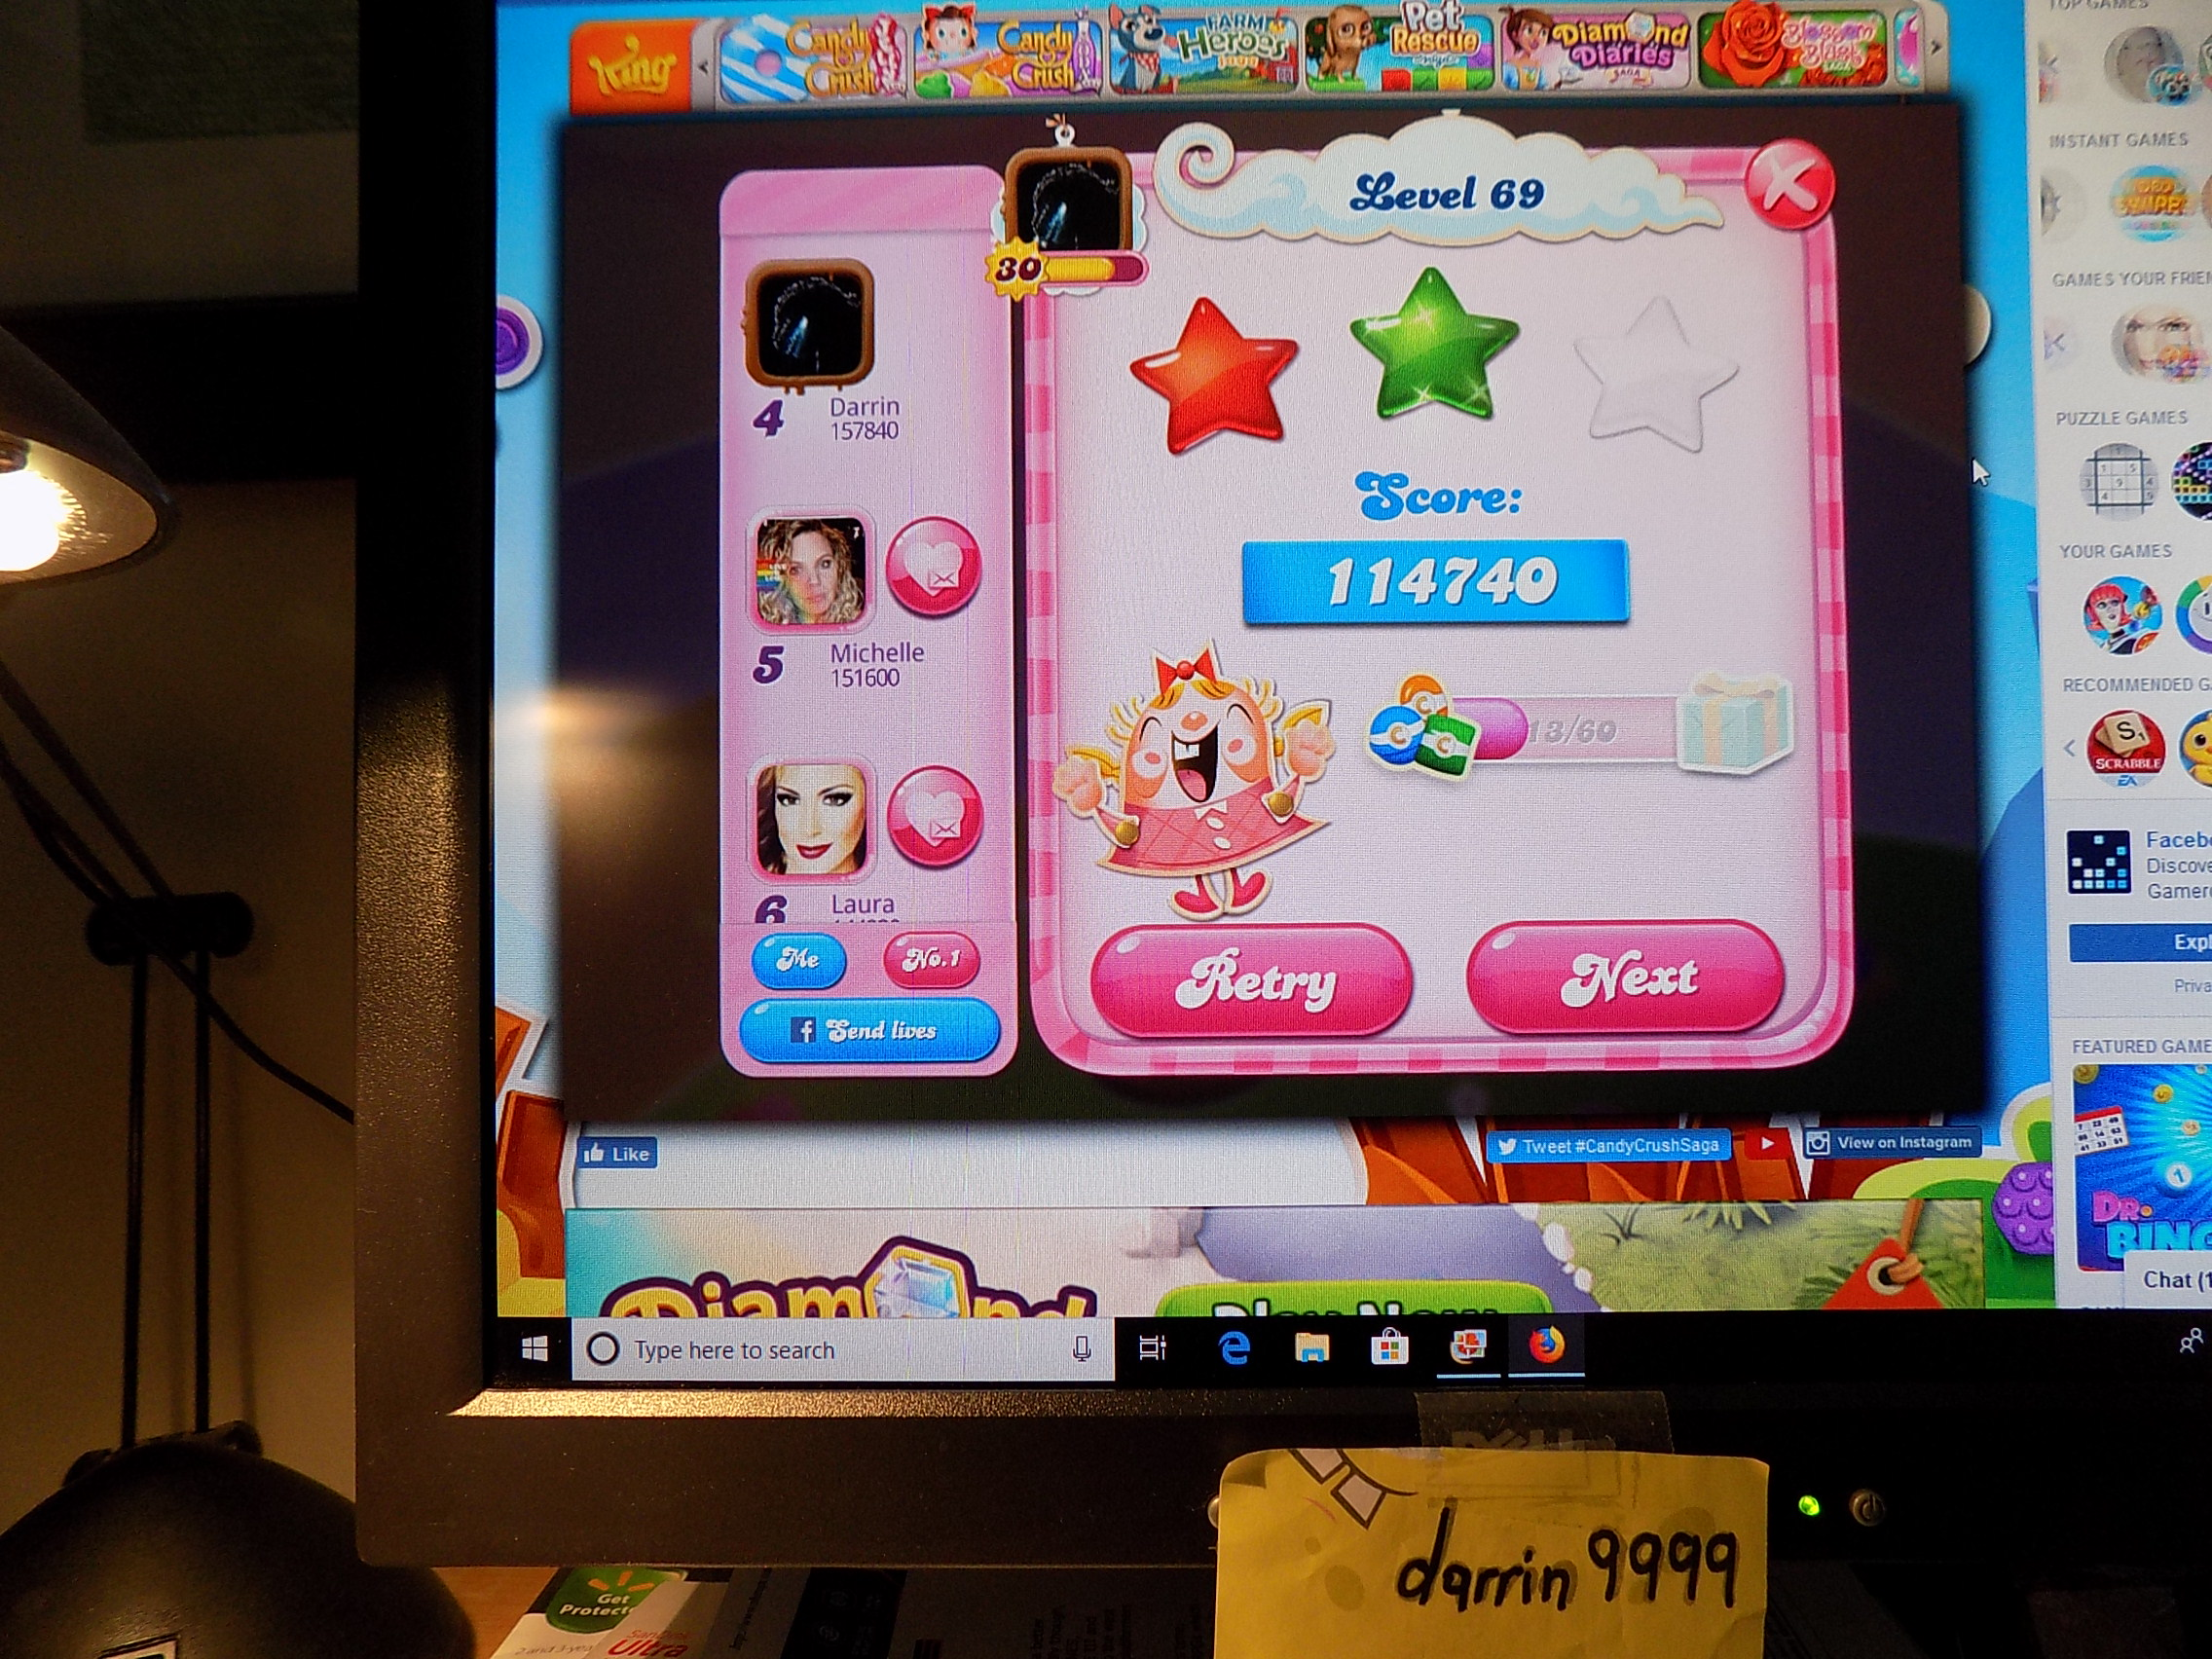 darrin9999: Candy Crush Saga: Level 069 (Web) 114,740 points on 2019-06-13 17:37:45